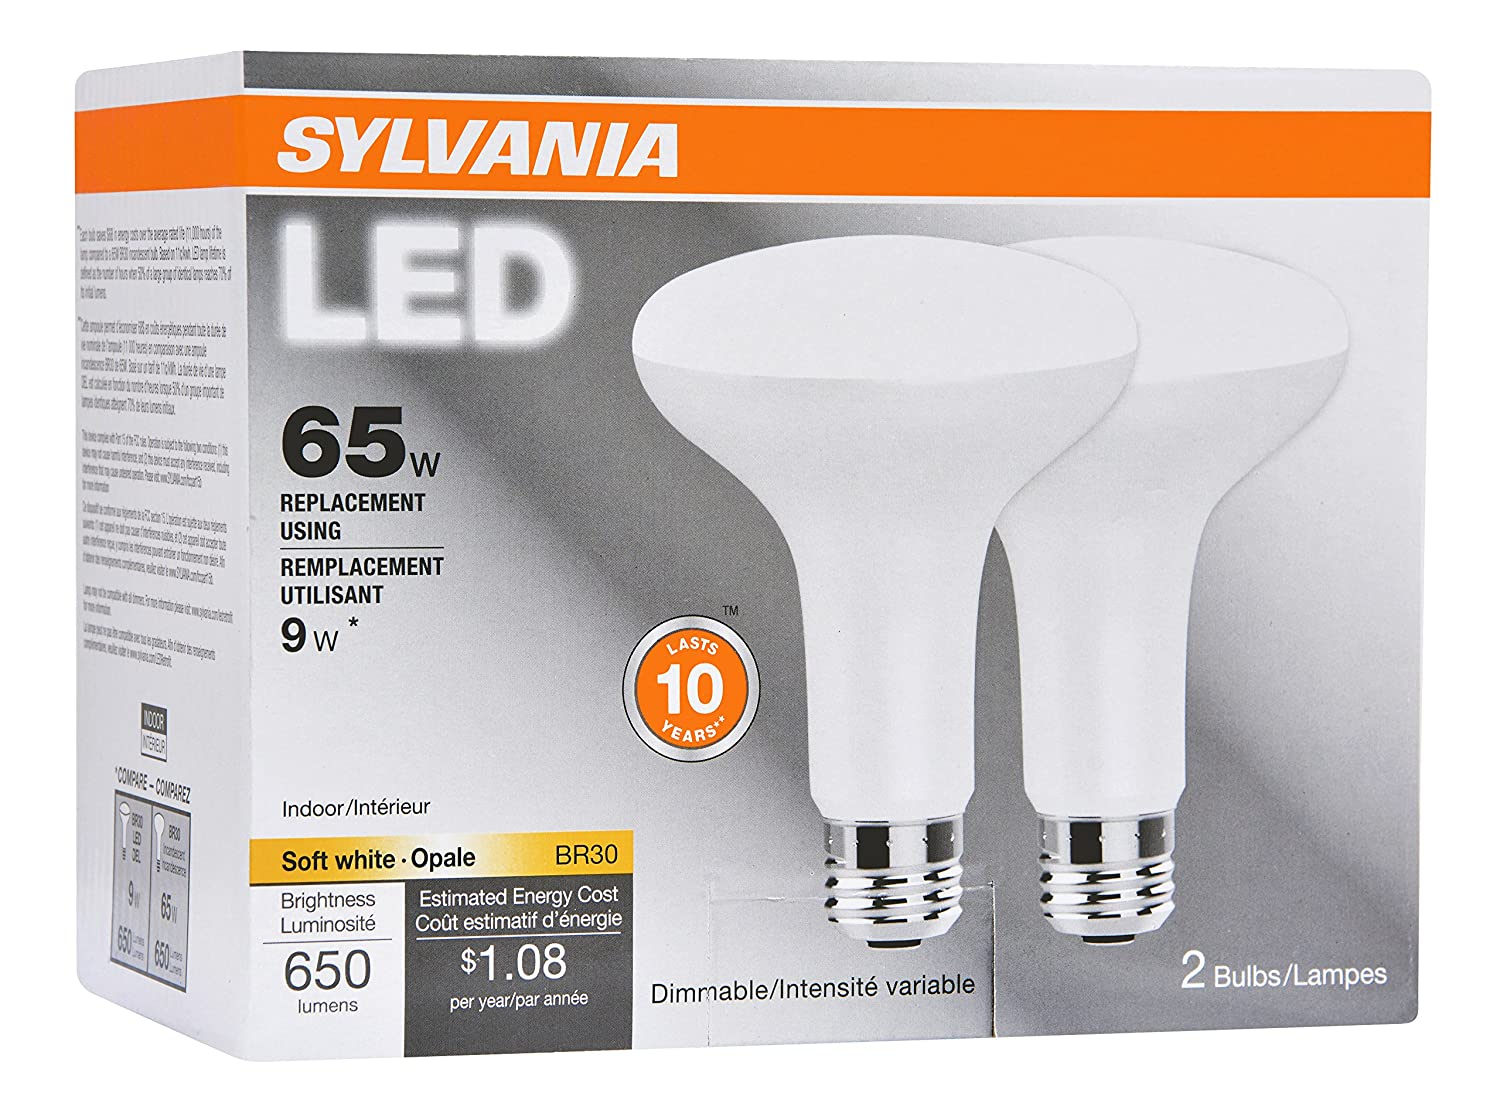 SYLVANIA 65W Equivalent LED Light Bulb BR30 Lamp 2 Pack Soft White Energy Saving Dimmable Value Series Medium Base Efficient 9W